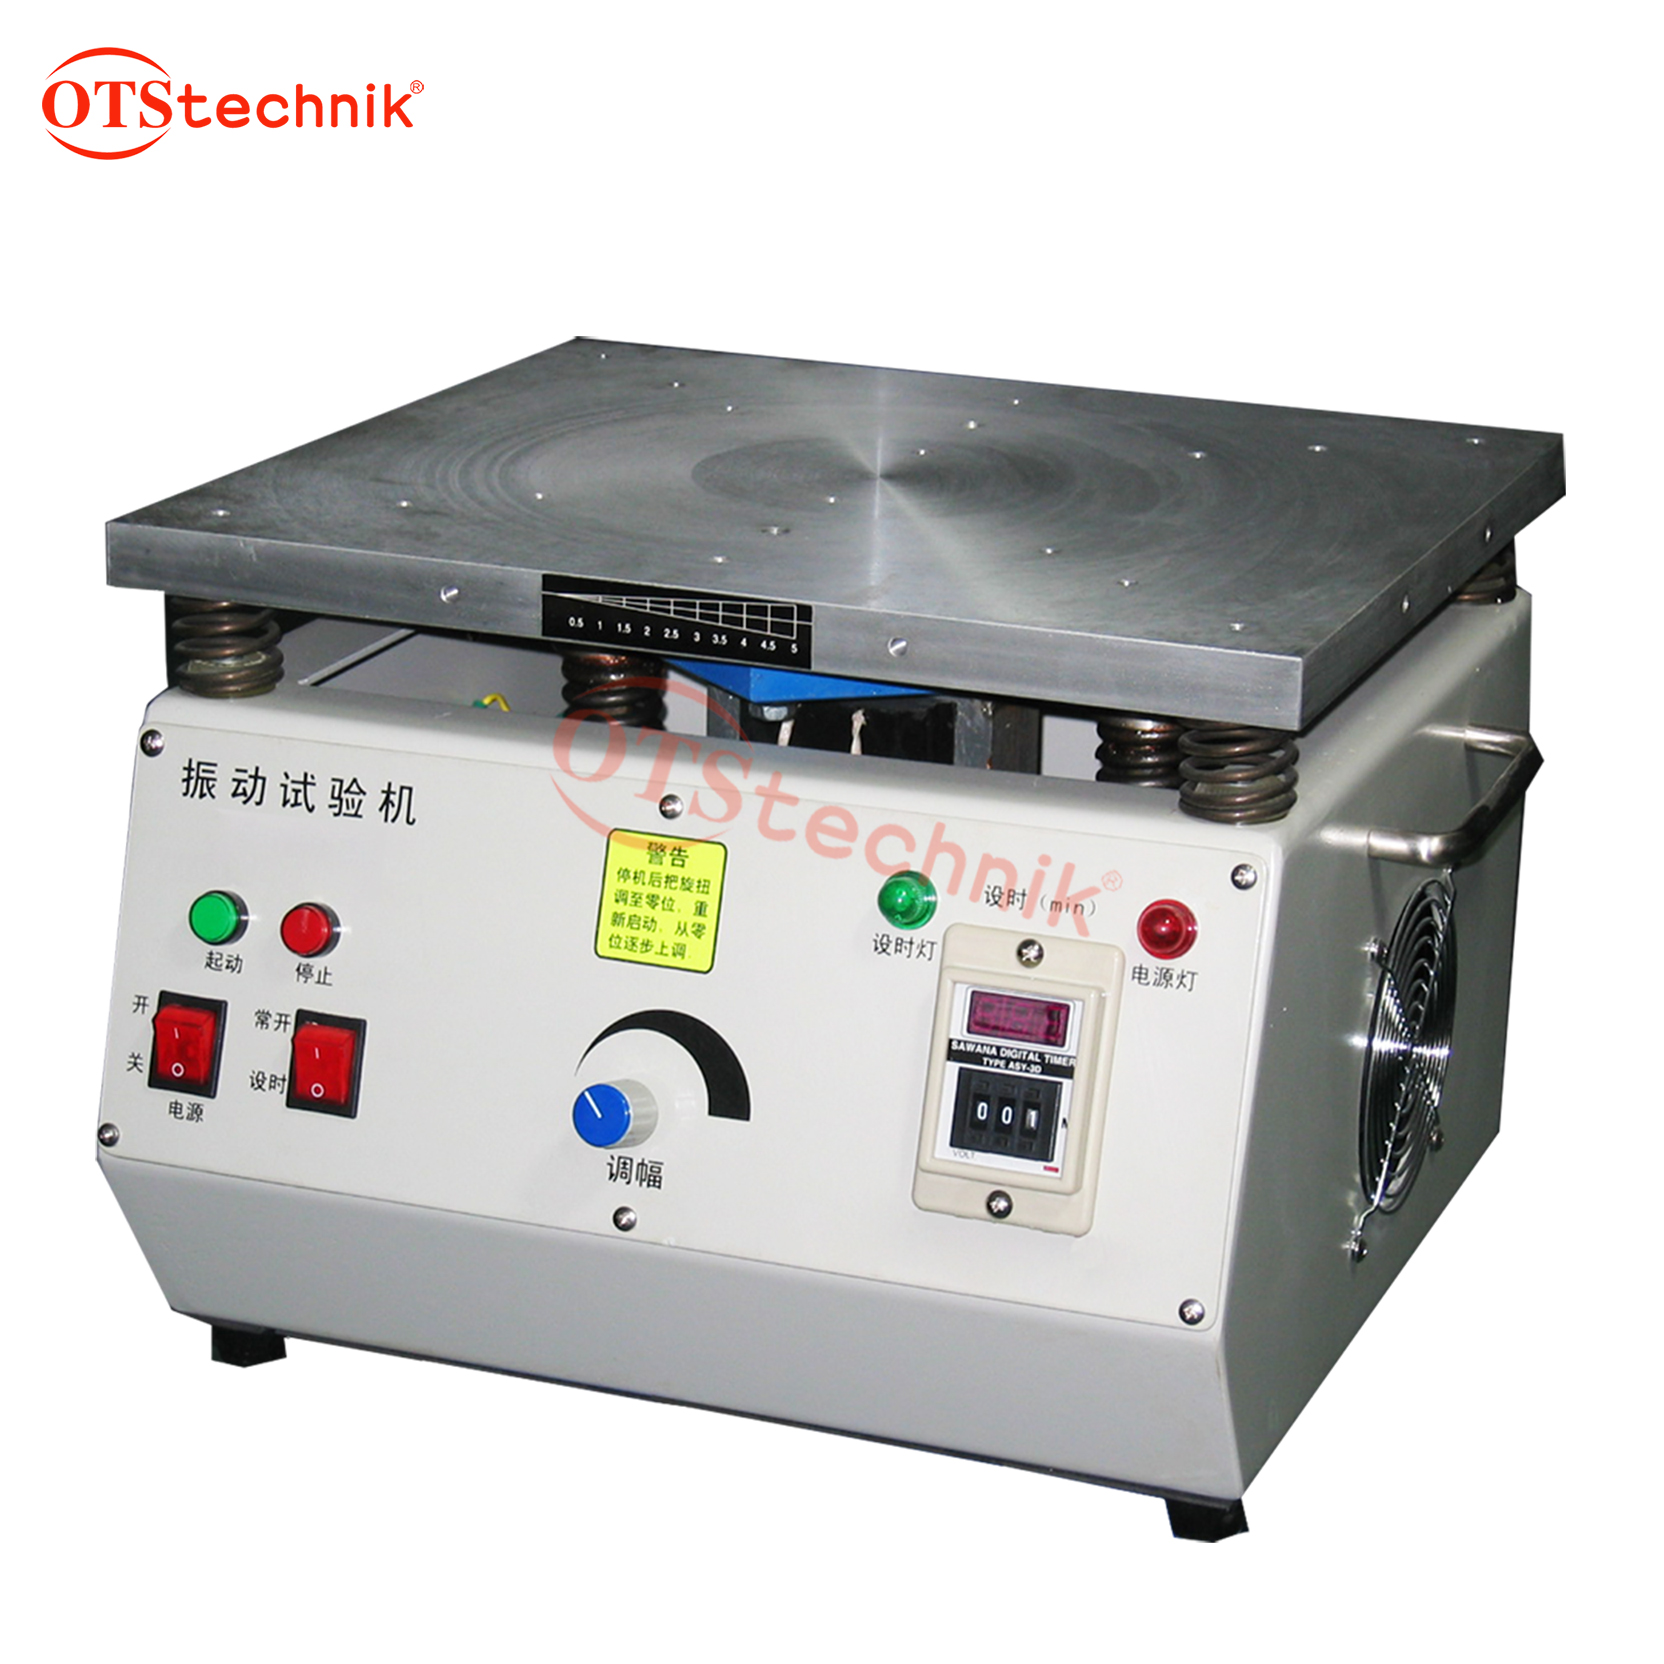 Vibration testing machine